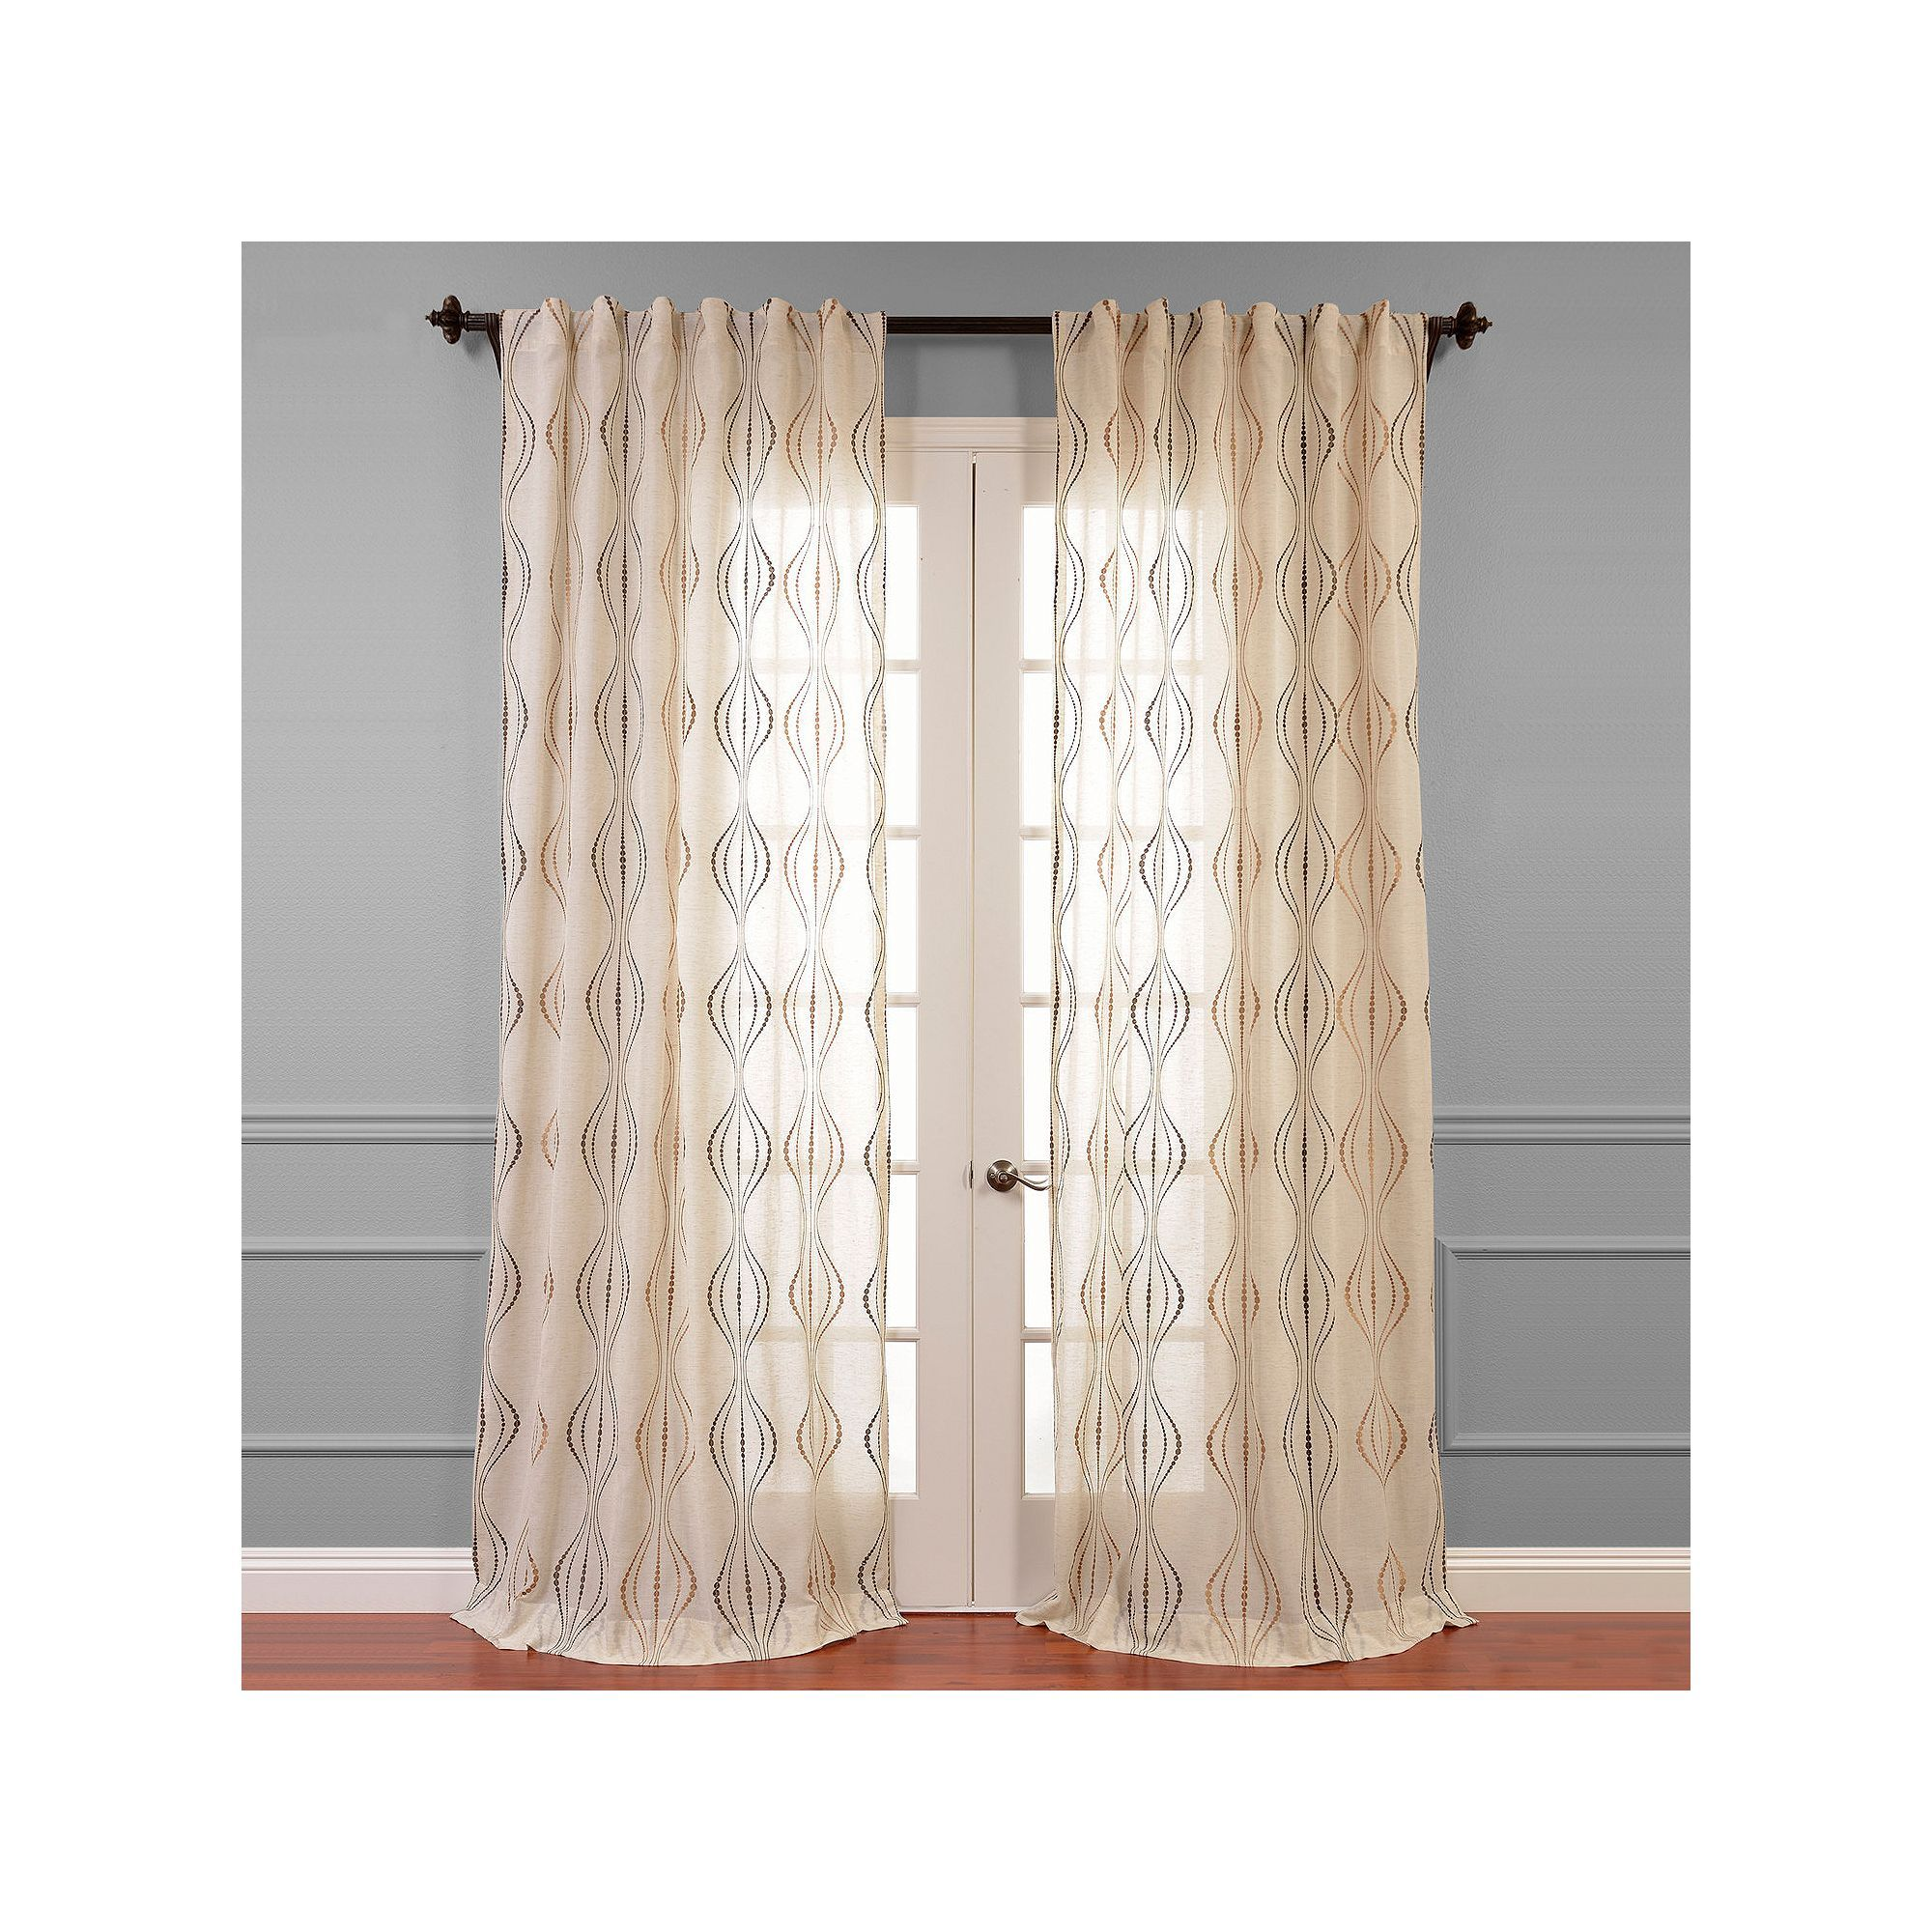 Eff suez embroidered sheer window curtain brown sheer curtains